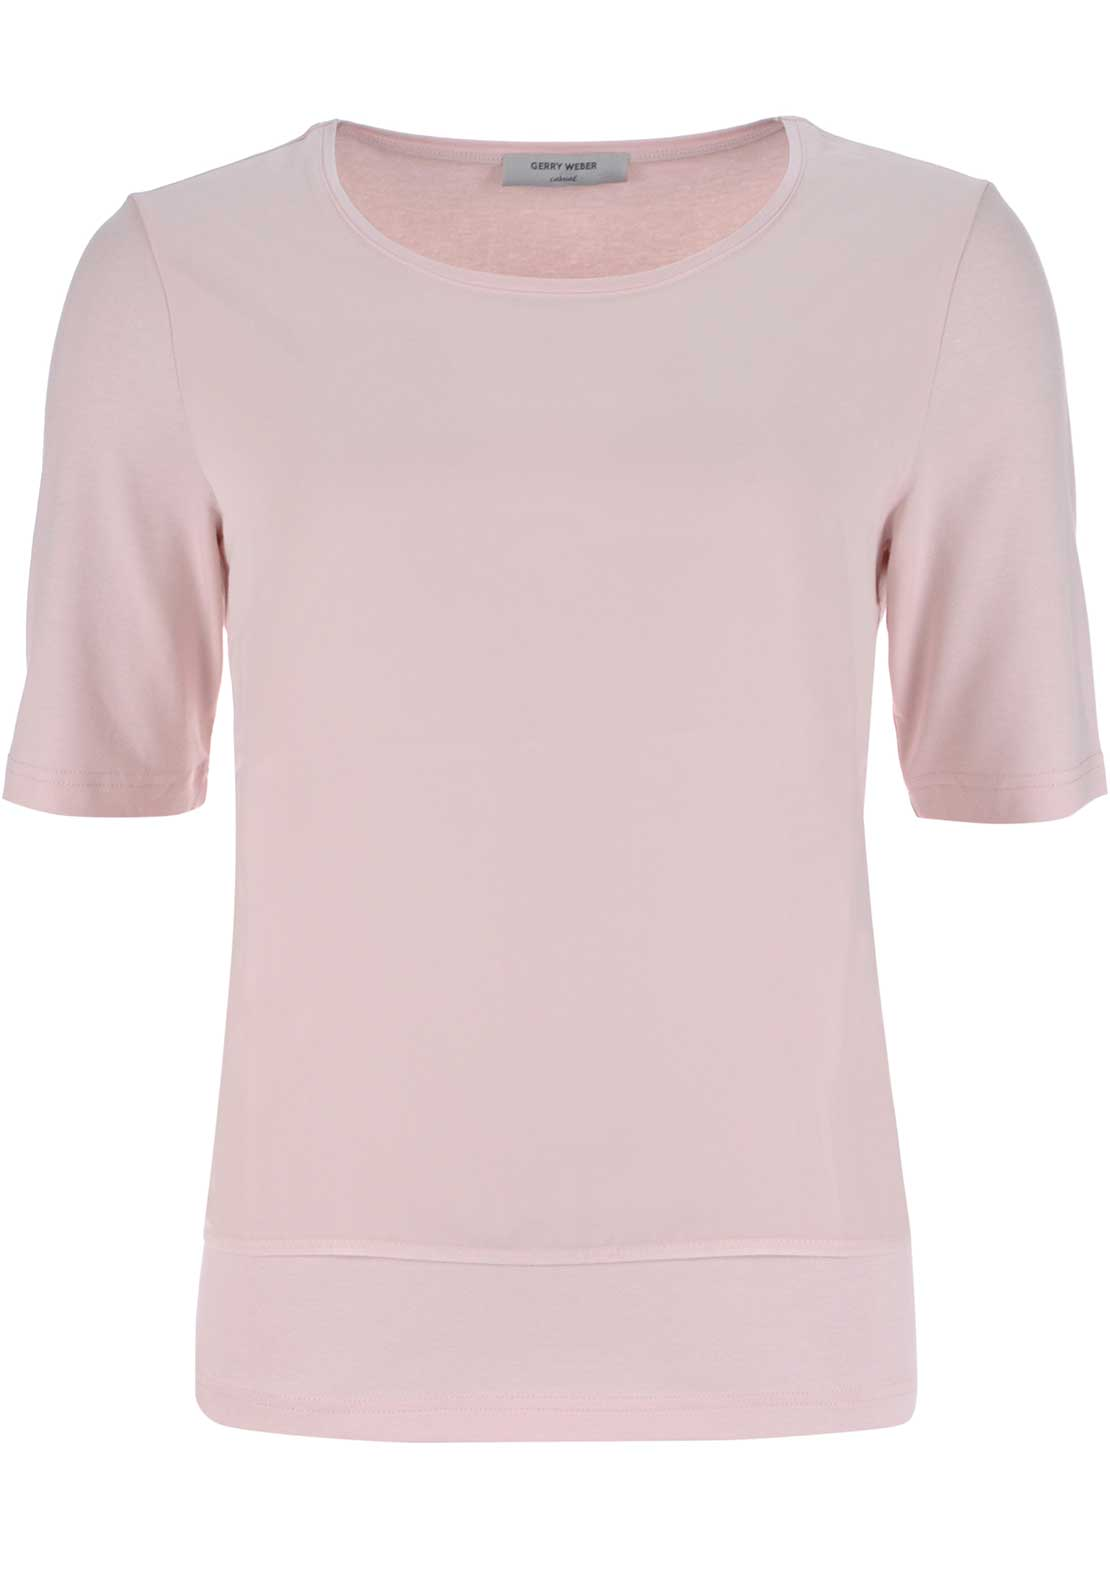 Gerry Weber Chiffon Overlay Short Sleeve Top, Pink